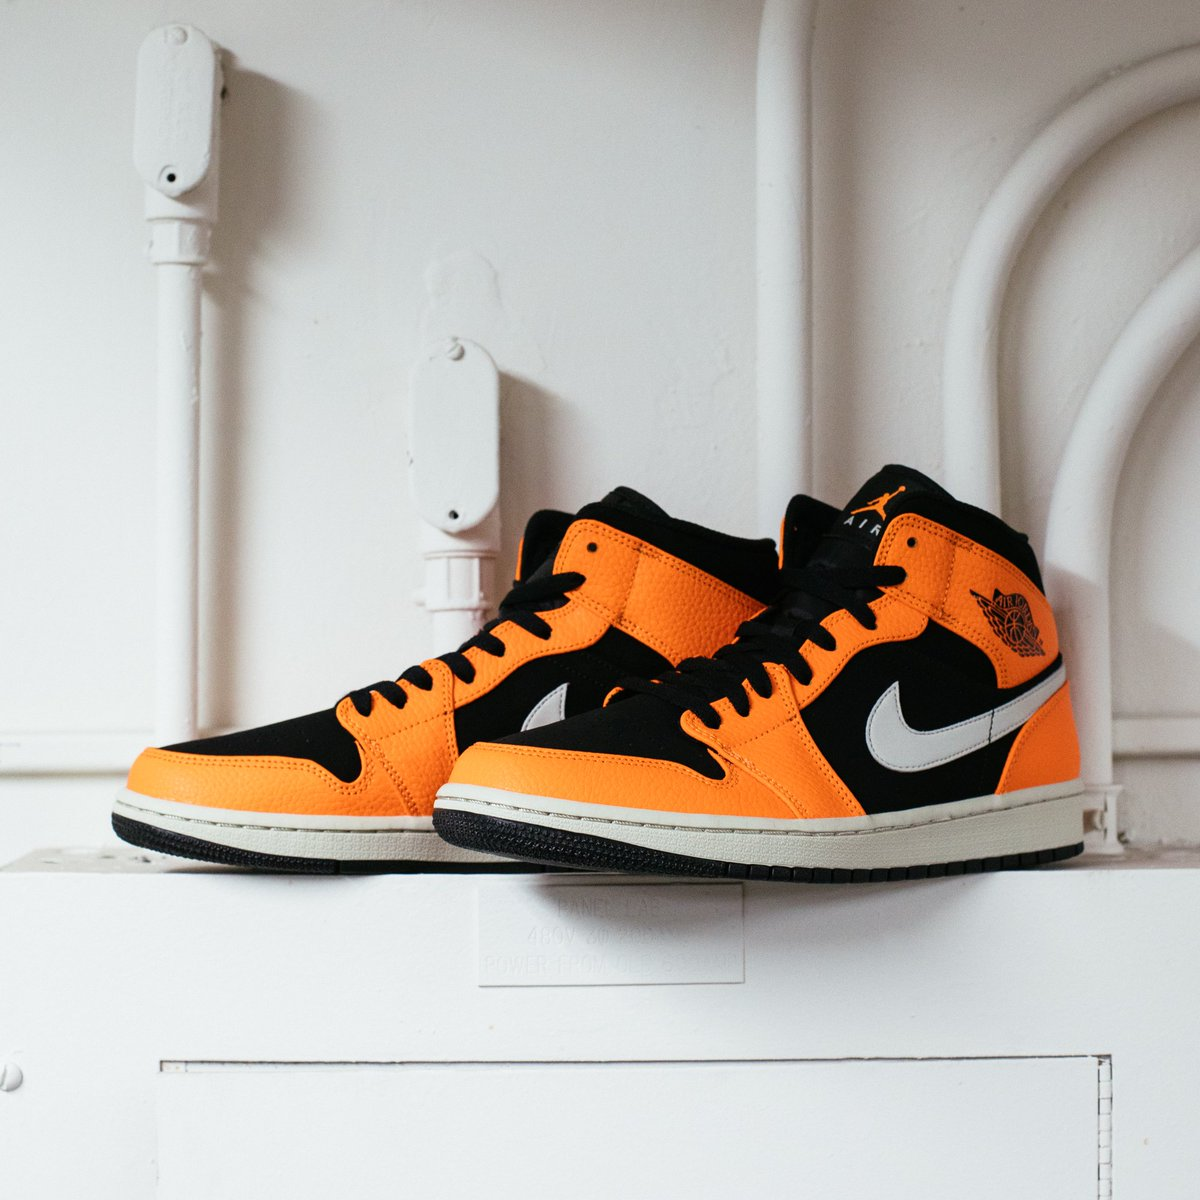 """400af0dda48 Air Jordan 1 Mid """"Black Cone Light Bone""""    Available now at All Undefeated  Chapter Storespic.twitter.com RXFm4uyK19"""